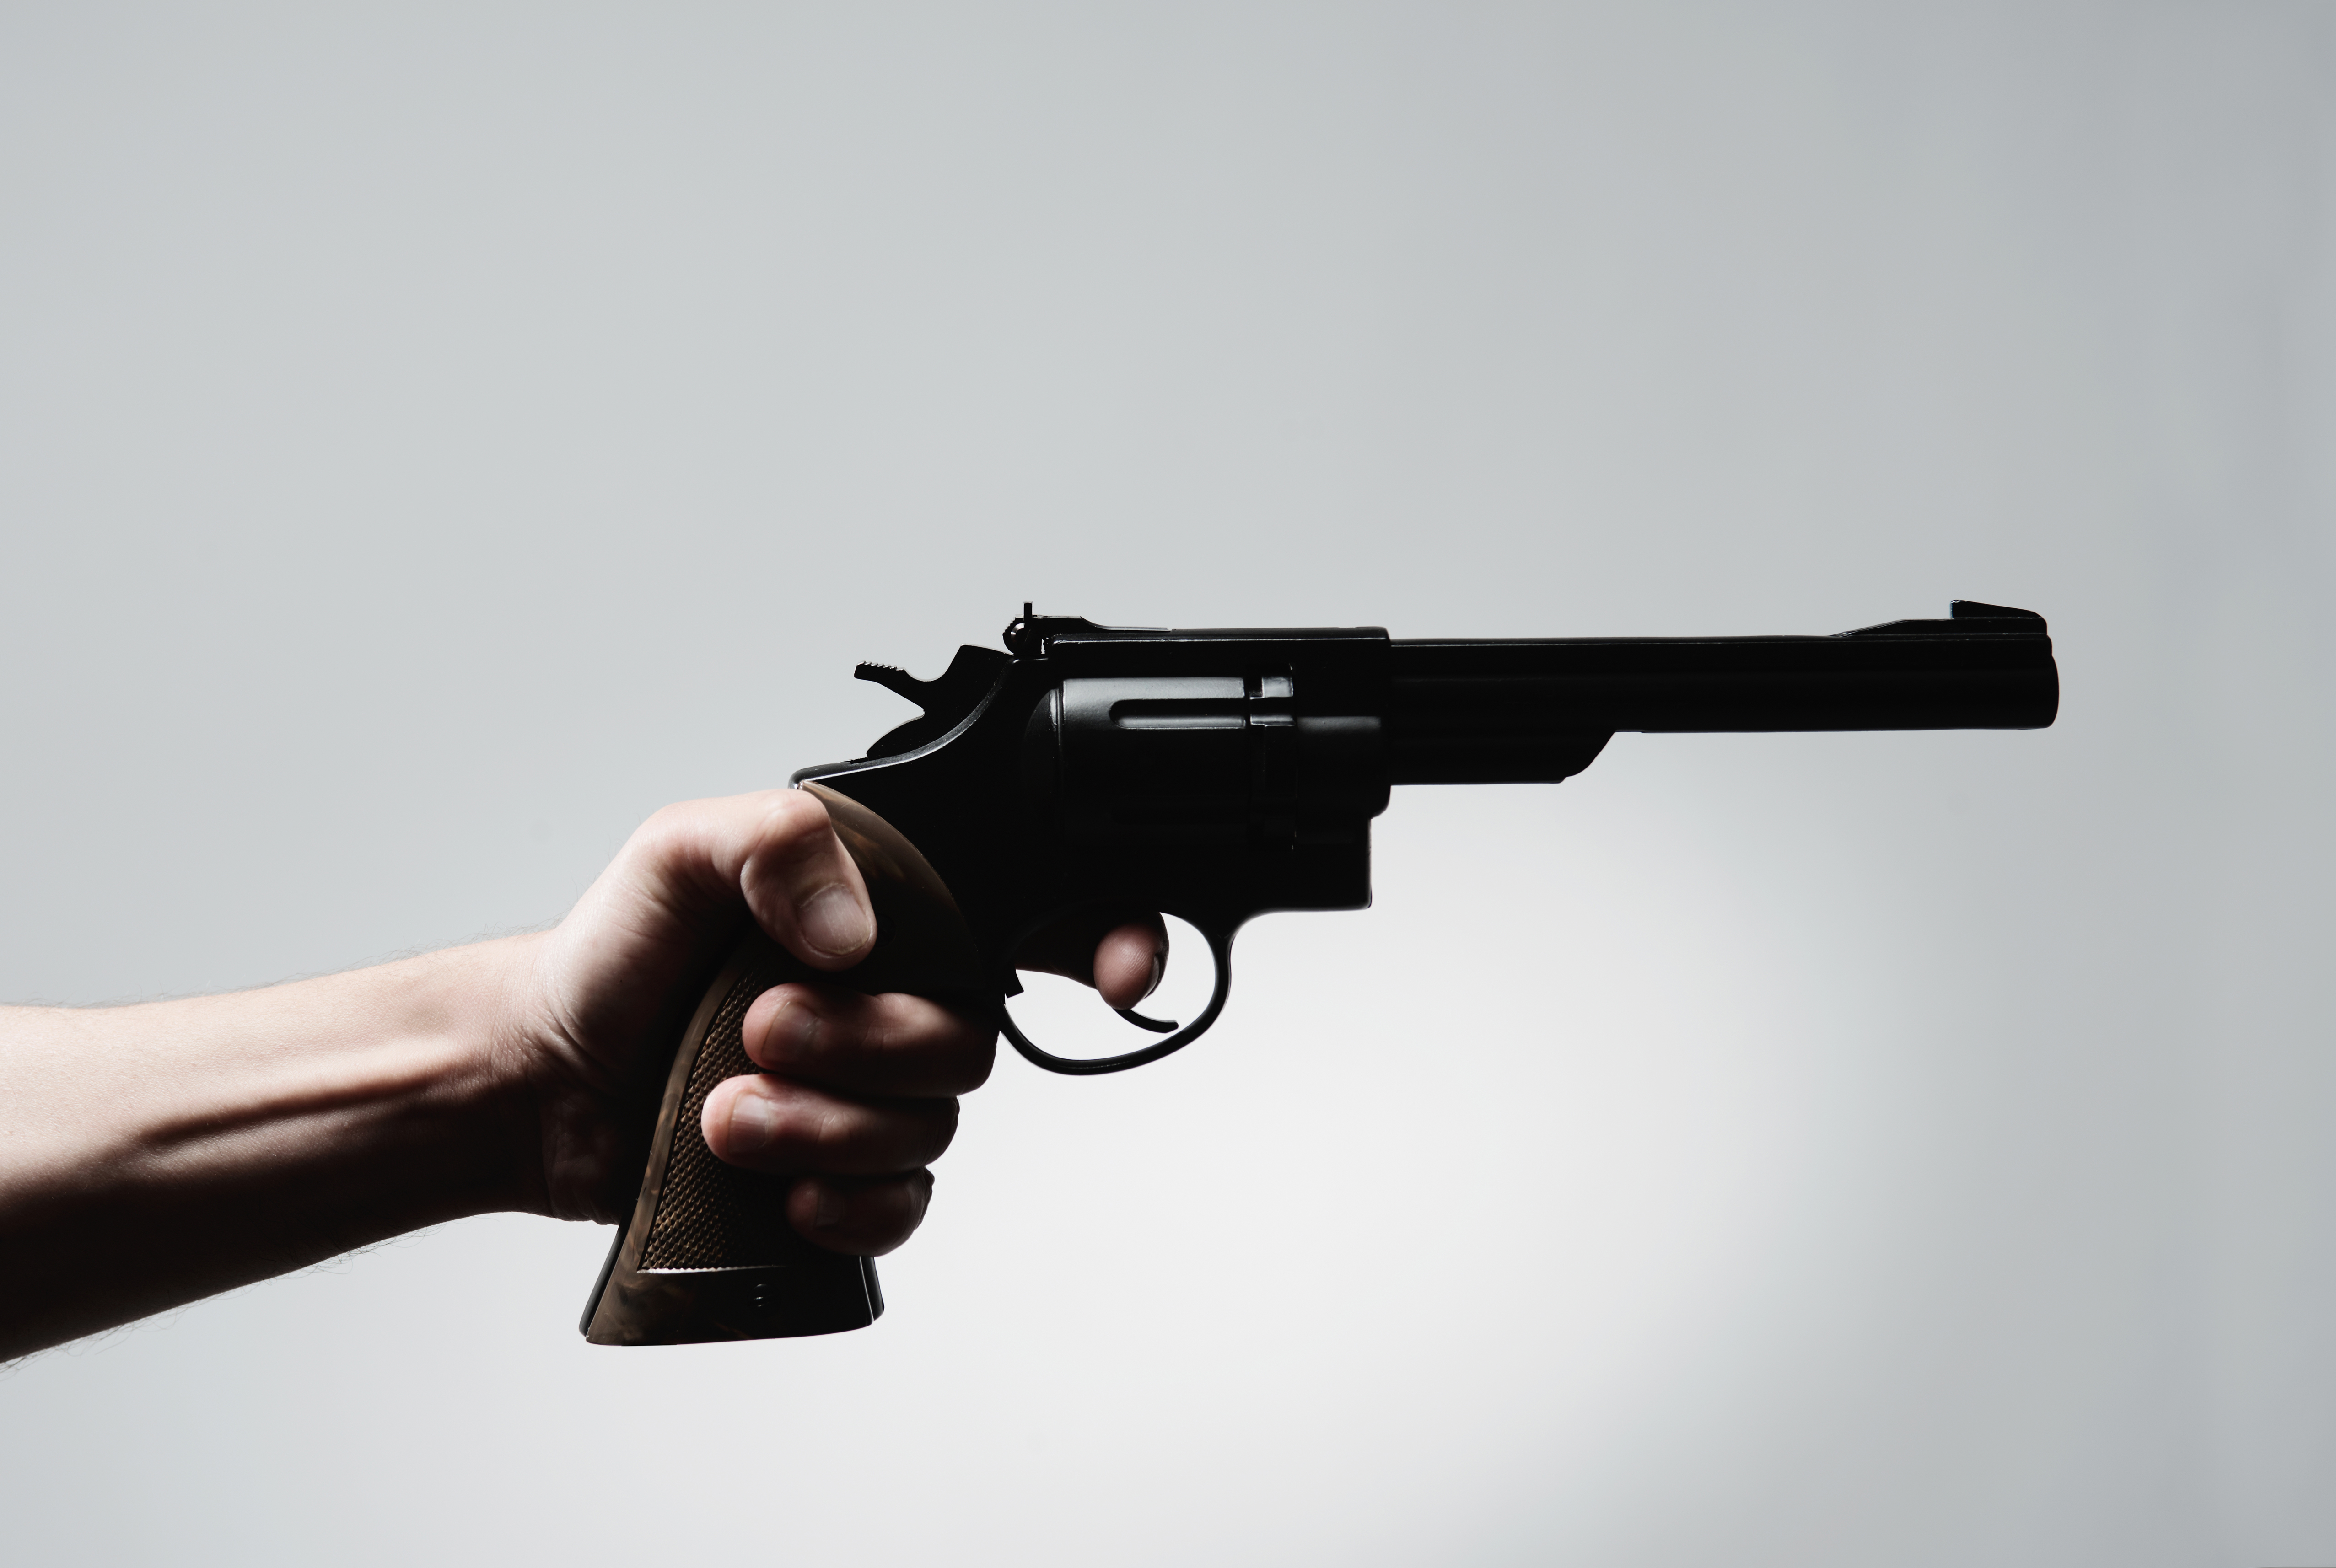 Image of a handgun. ©Getty Images / PM Images